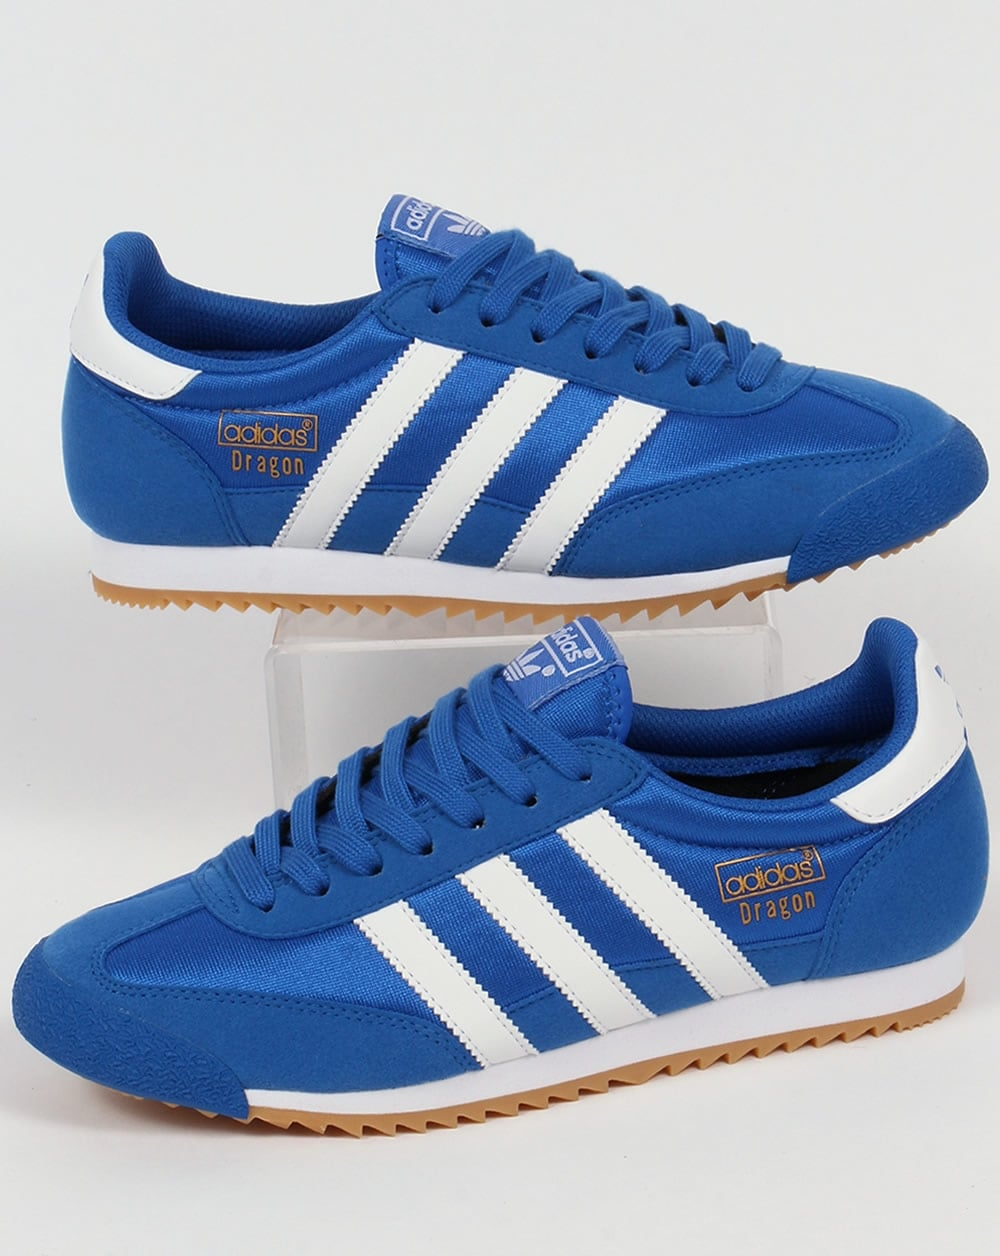 buy popular 39736 7a4f0 Retro Blue Suede ADIDAS Sneaker UK 8 - mainstreetblytheville.org